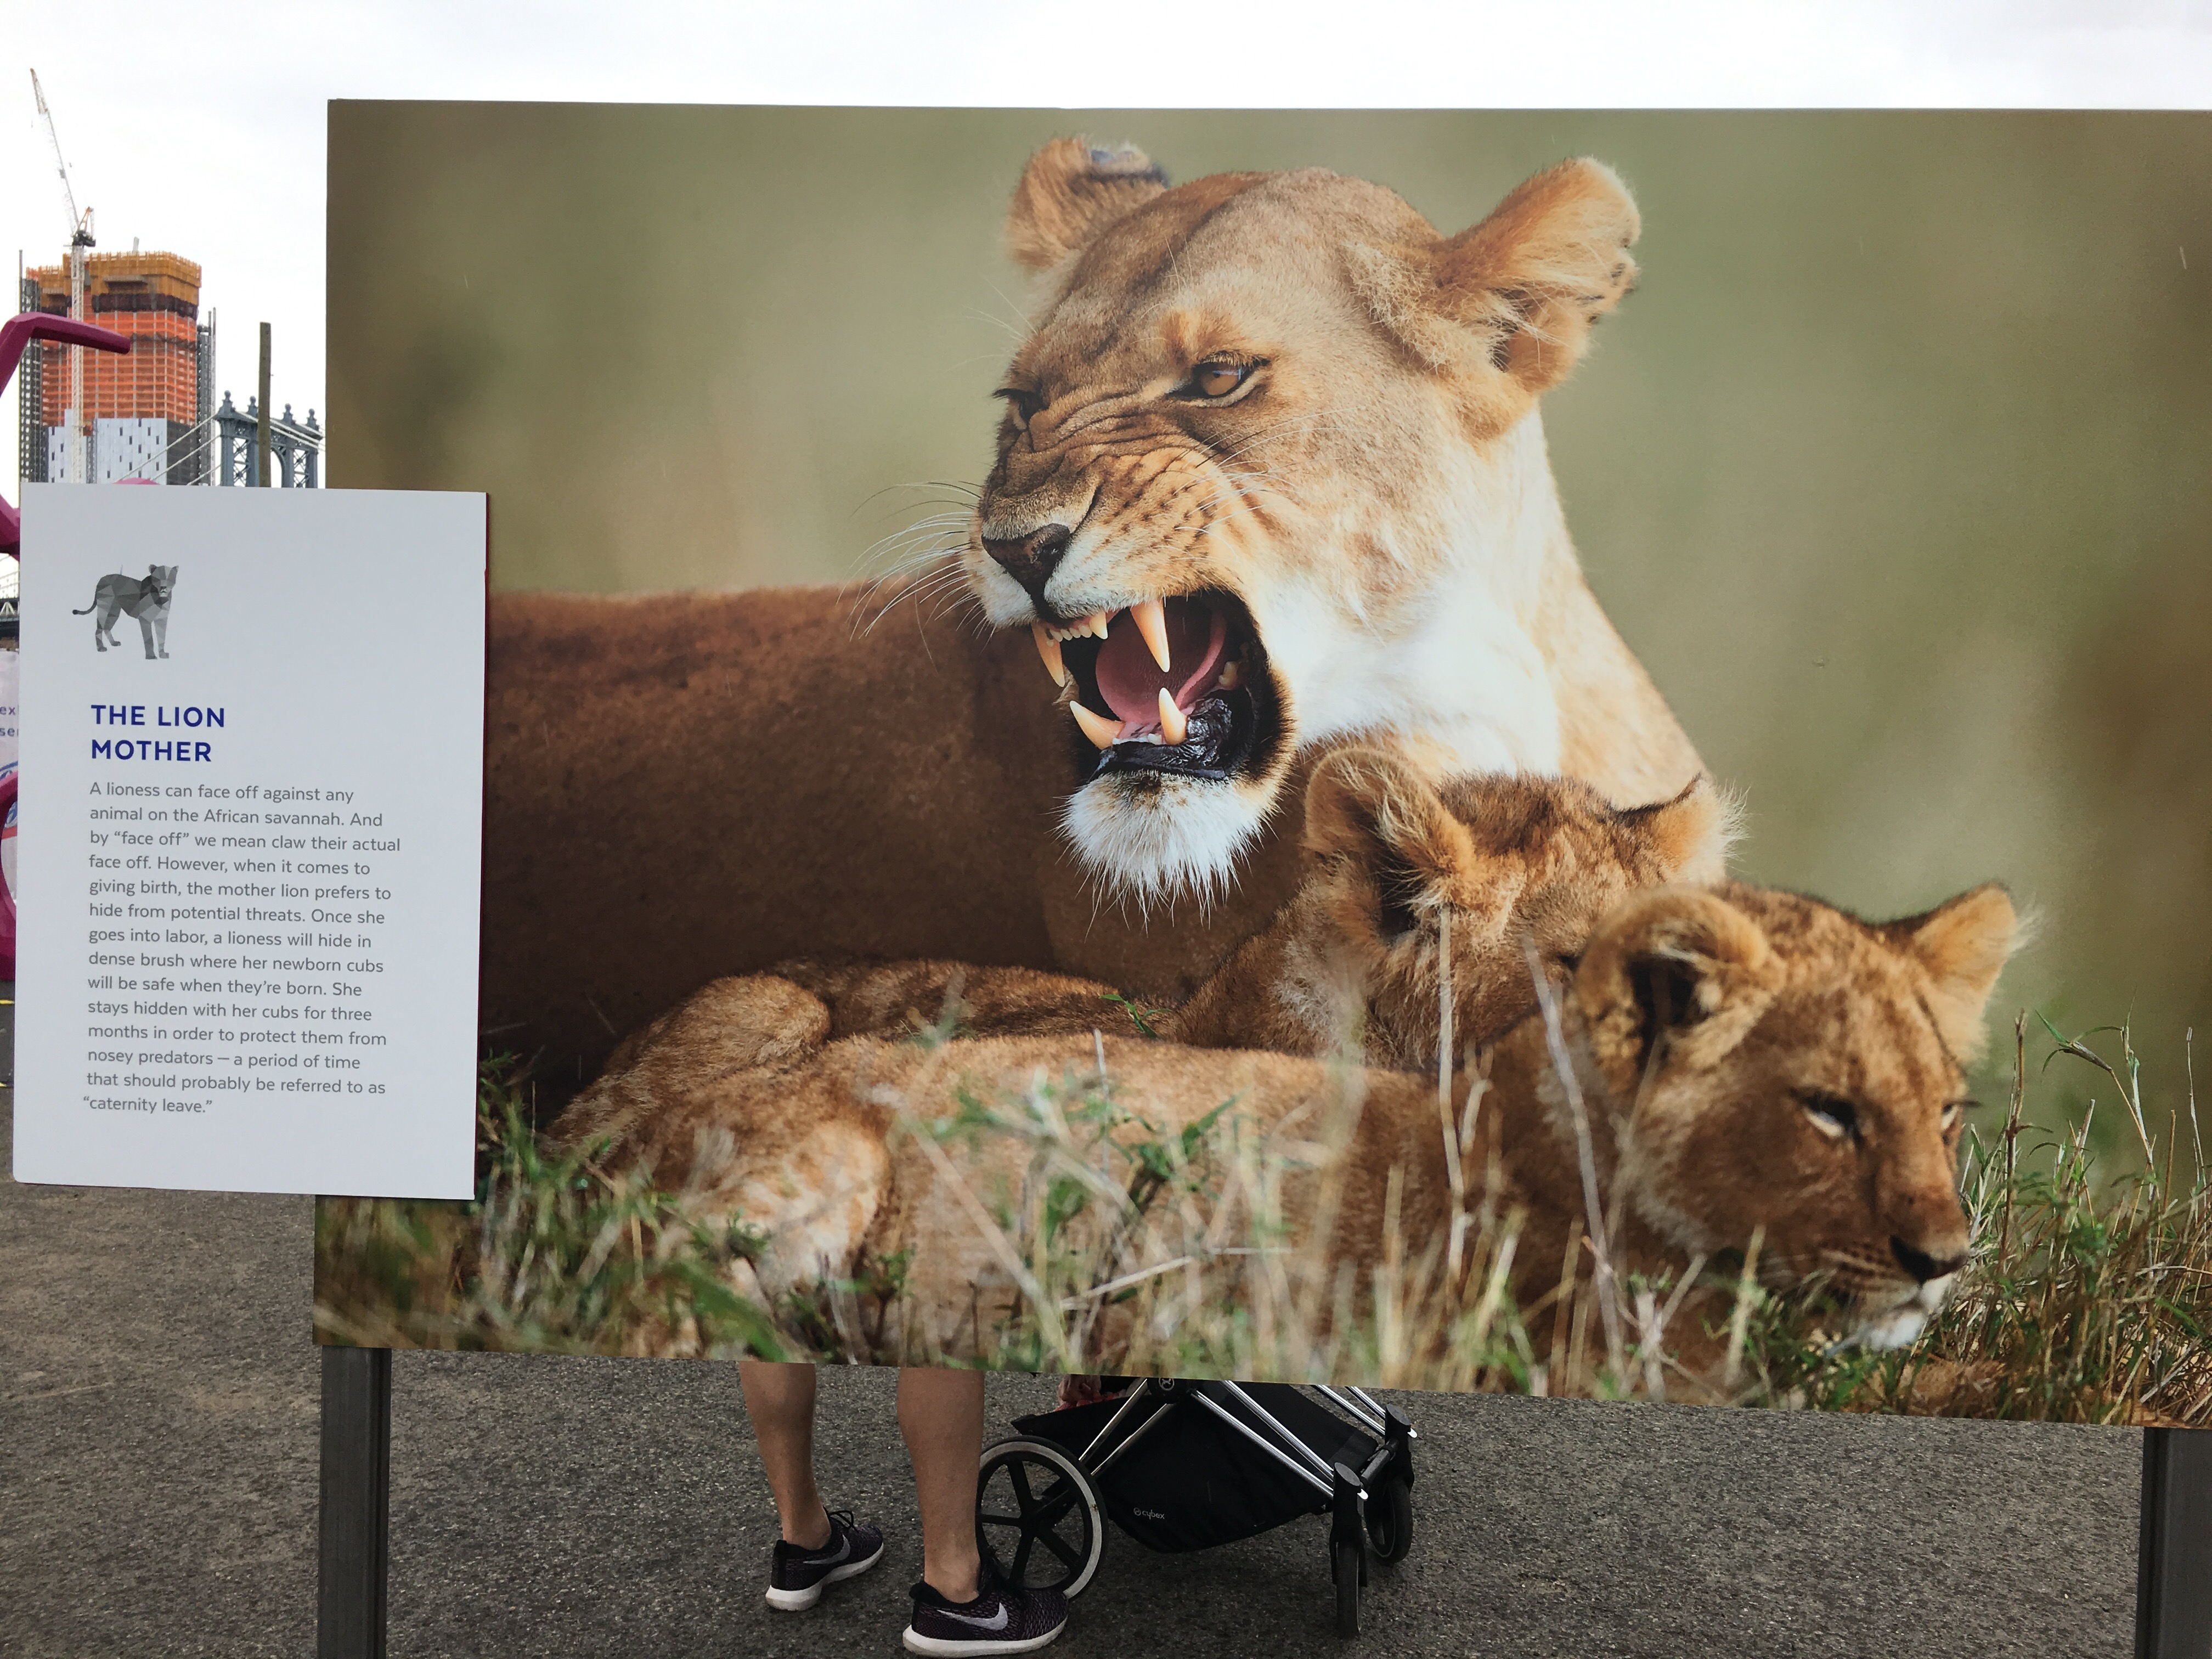 The Protect Like a Mother exhibit features plaques that detail how different animal moms protect their kids.